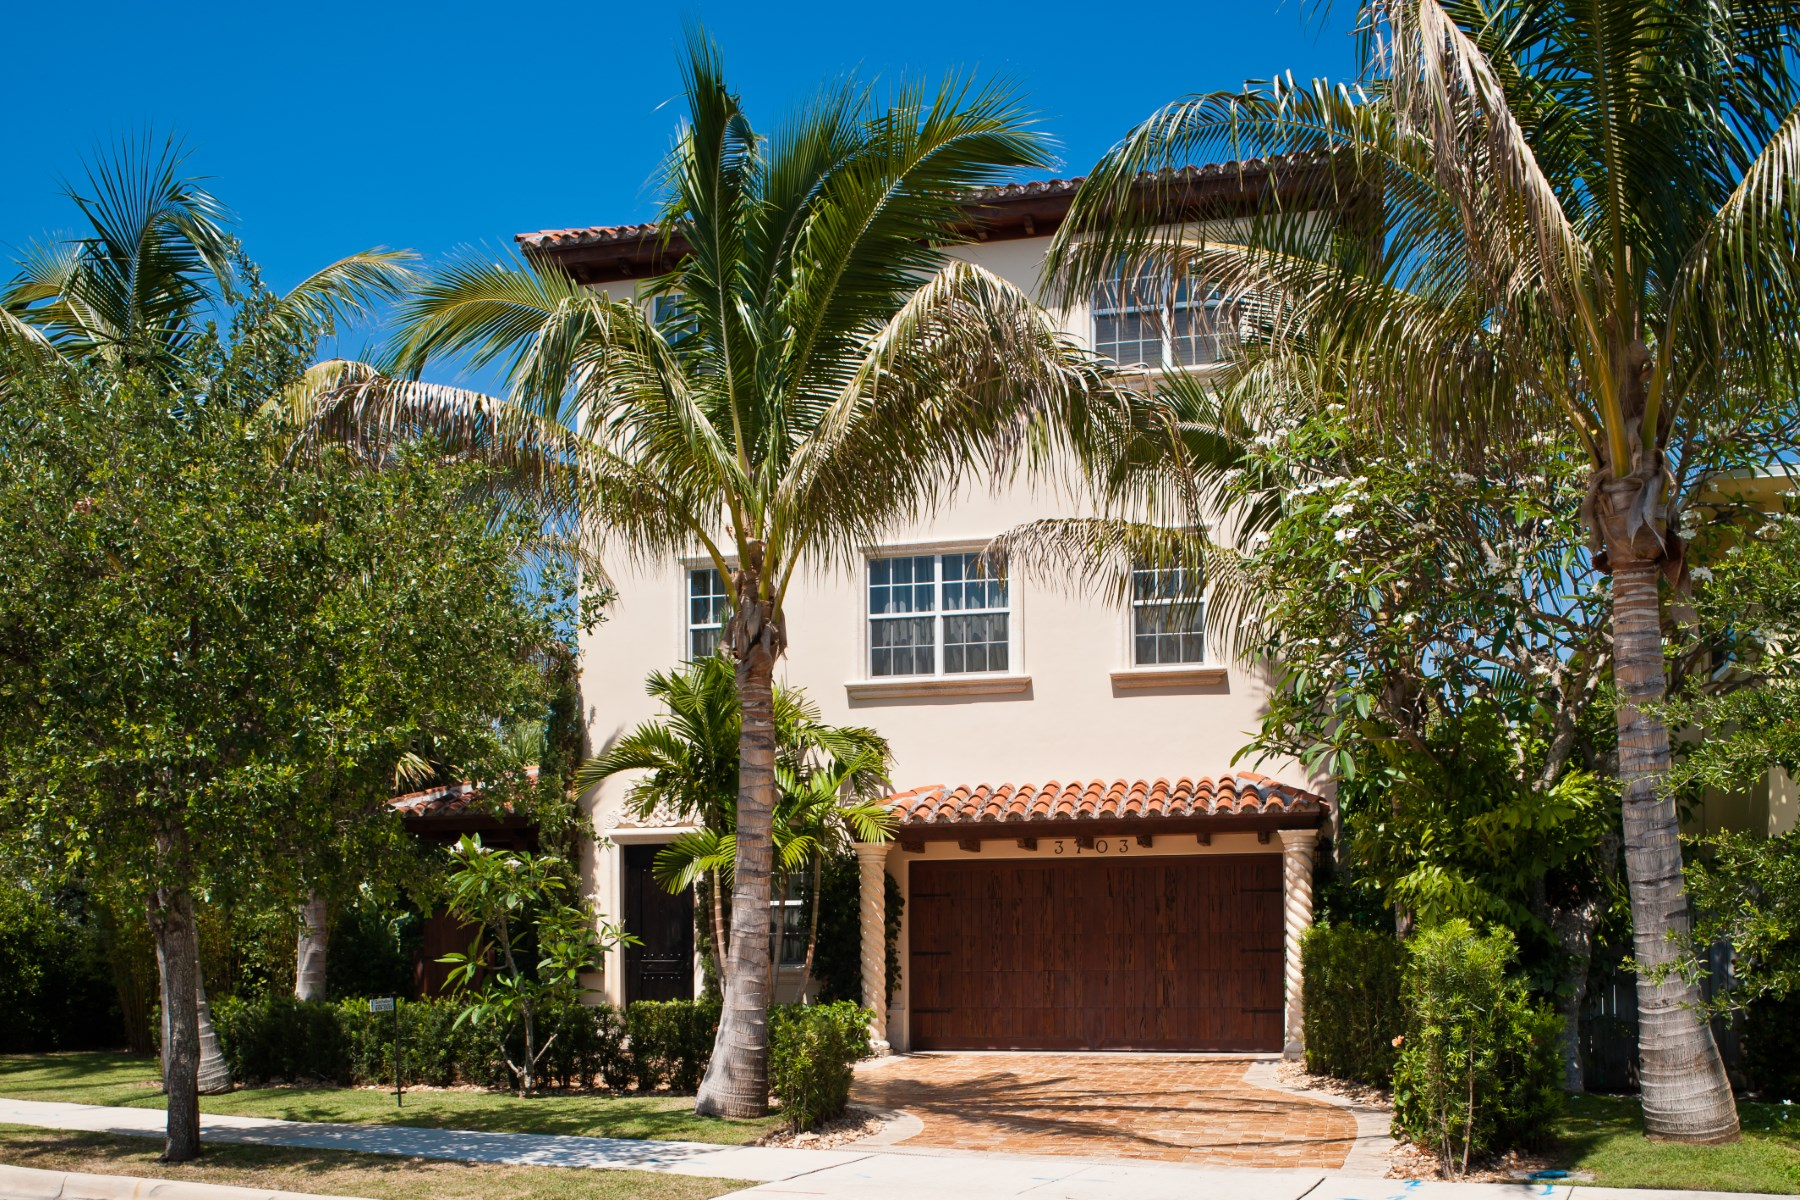 Moradia para Venda às Three Story Villa 3703 Washington Rd West Palm Beach, Florida, 33405 Estados Unidos